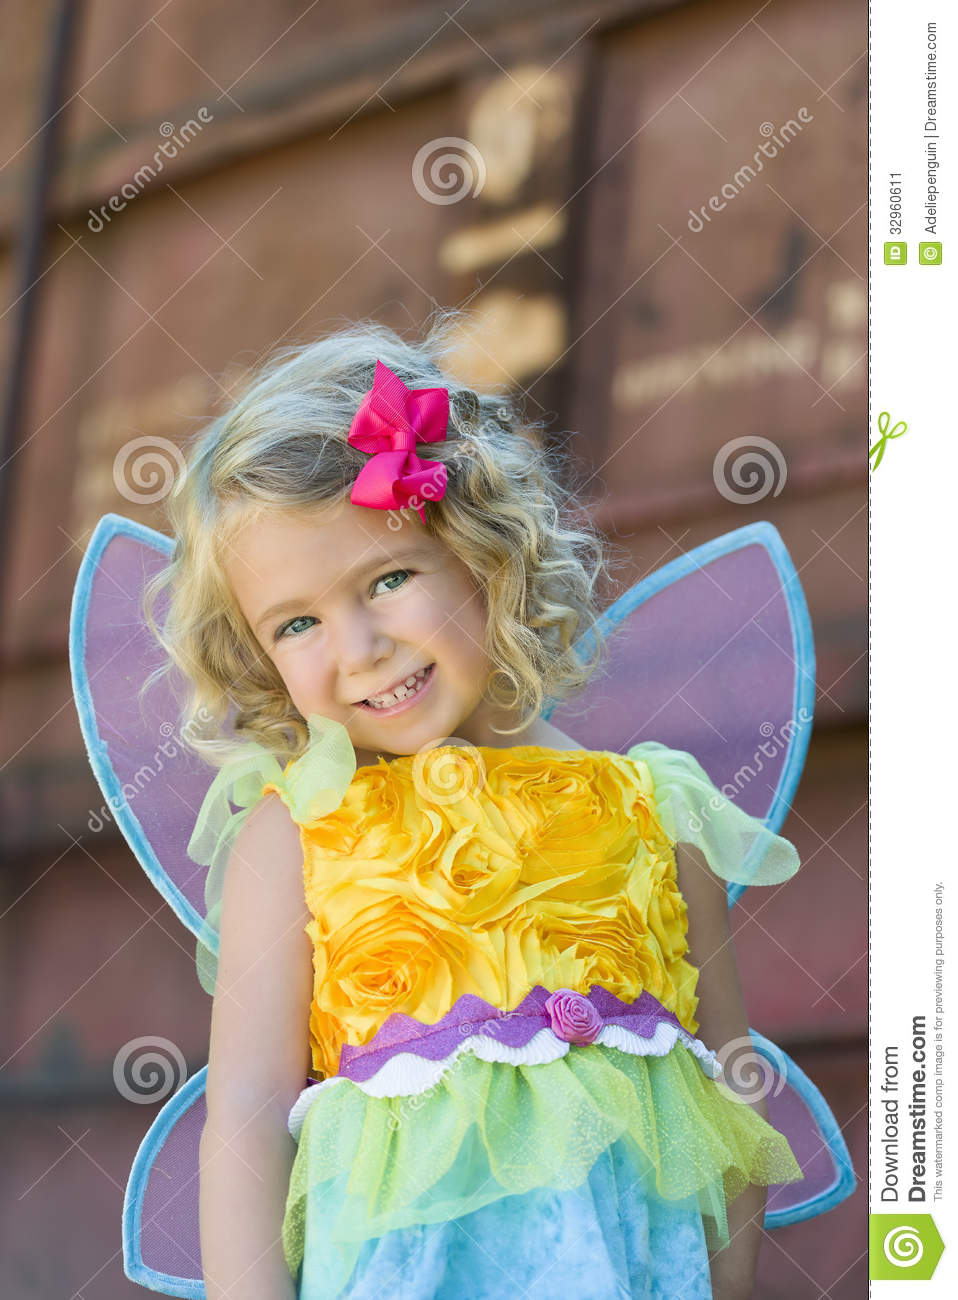 Download comp  sc 1 st  Dreamstime.com & Toddler In Fairy Halloween Costume Stock Image - Image of green ...